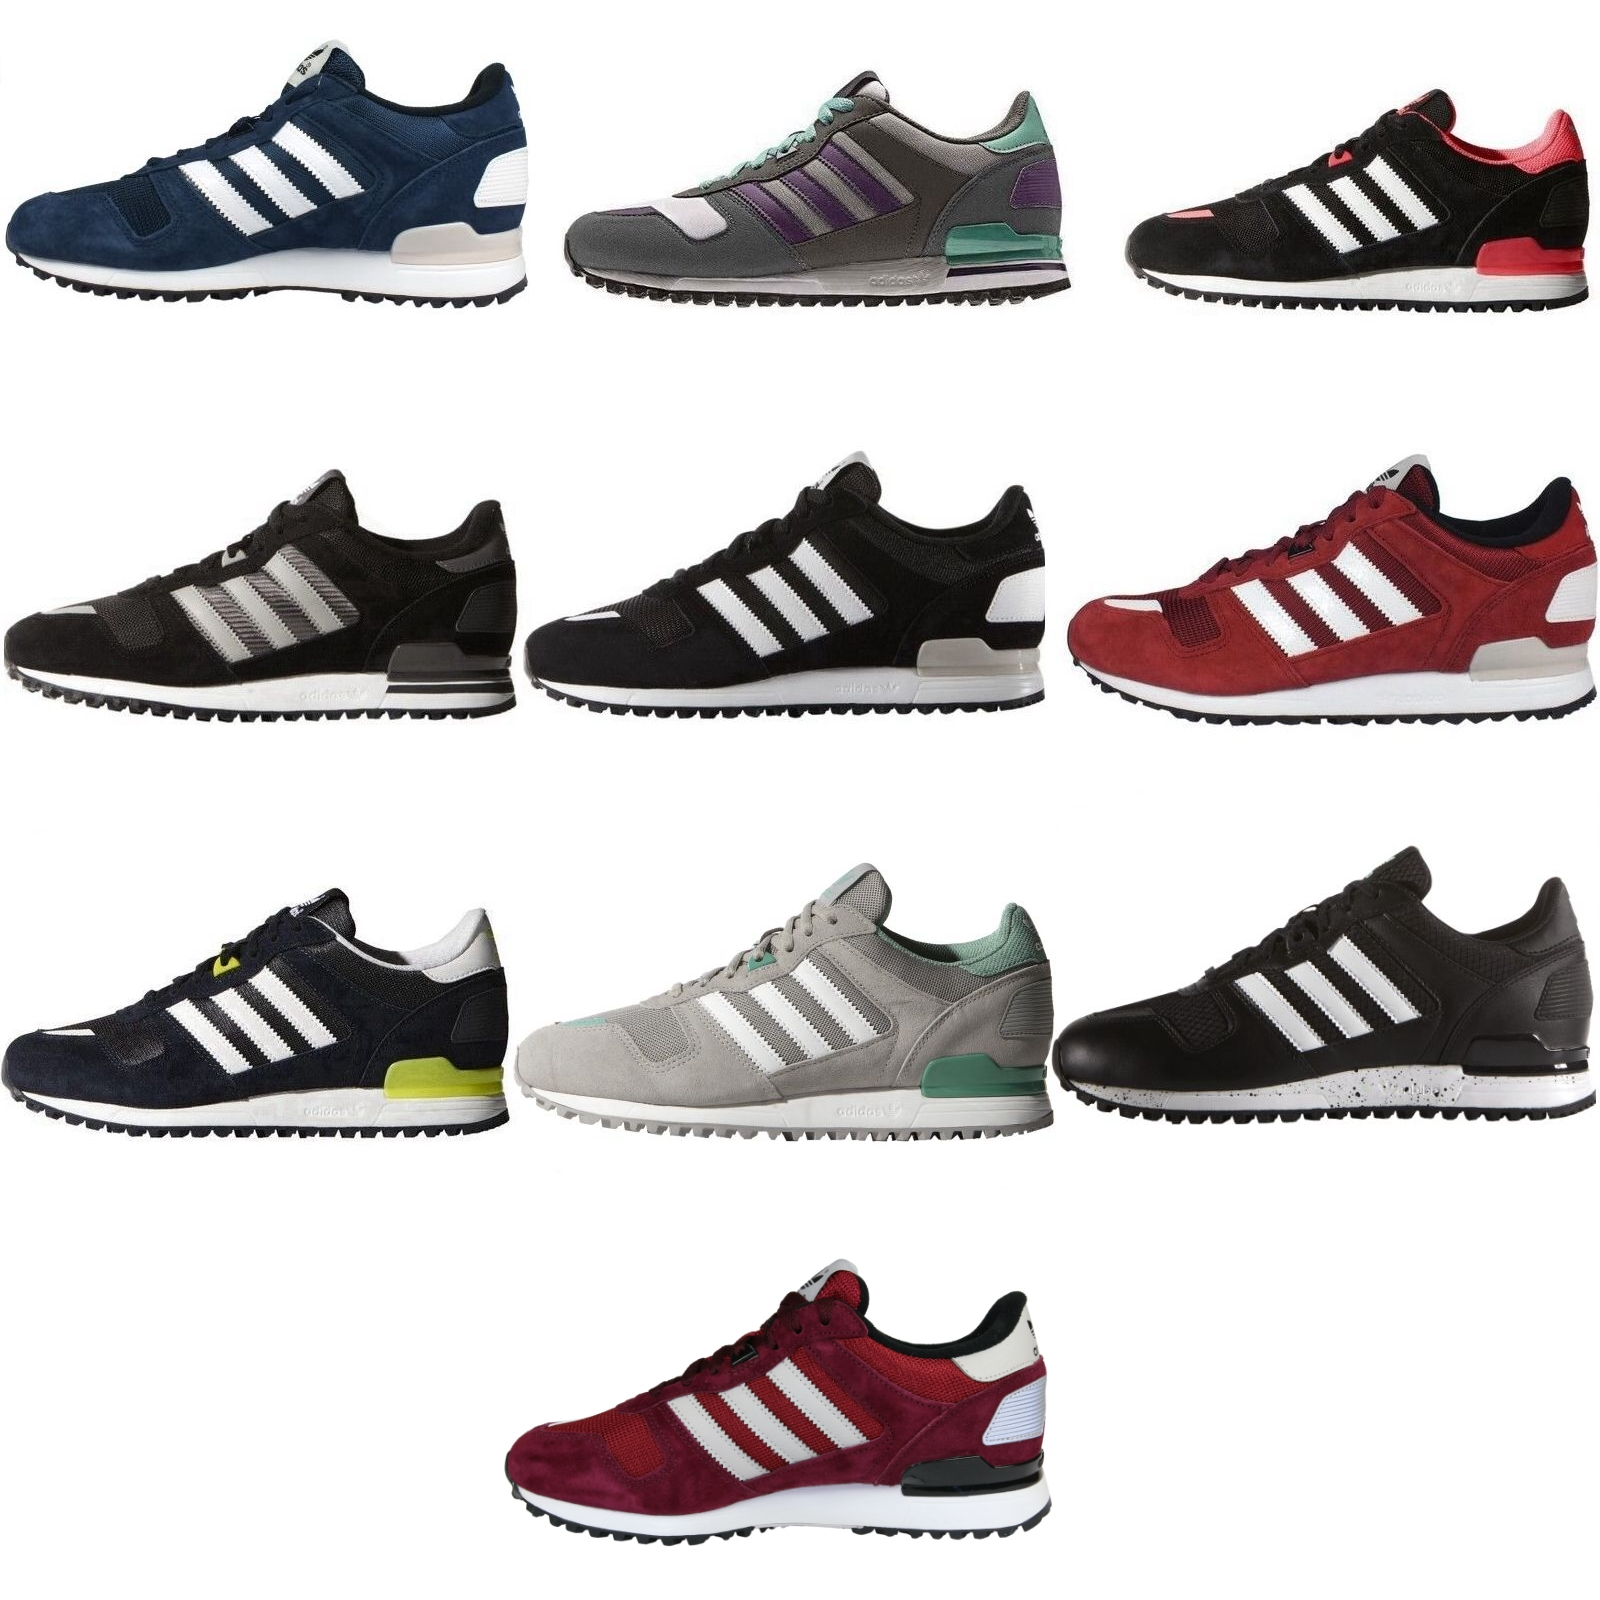 adidas originals zx 700 herren damen schuhe turnschuhe. Black Bedroom Furniture Sets. Home Design Ideas